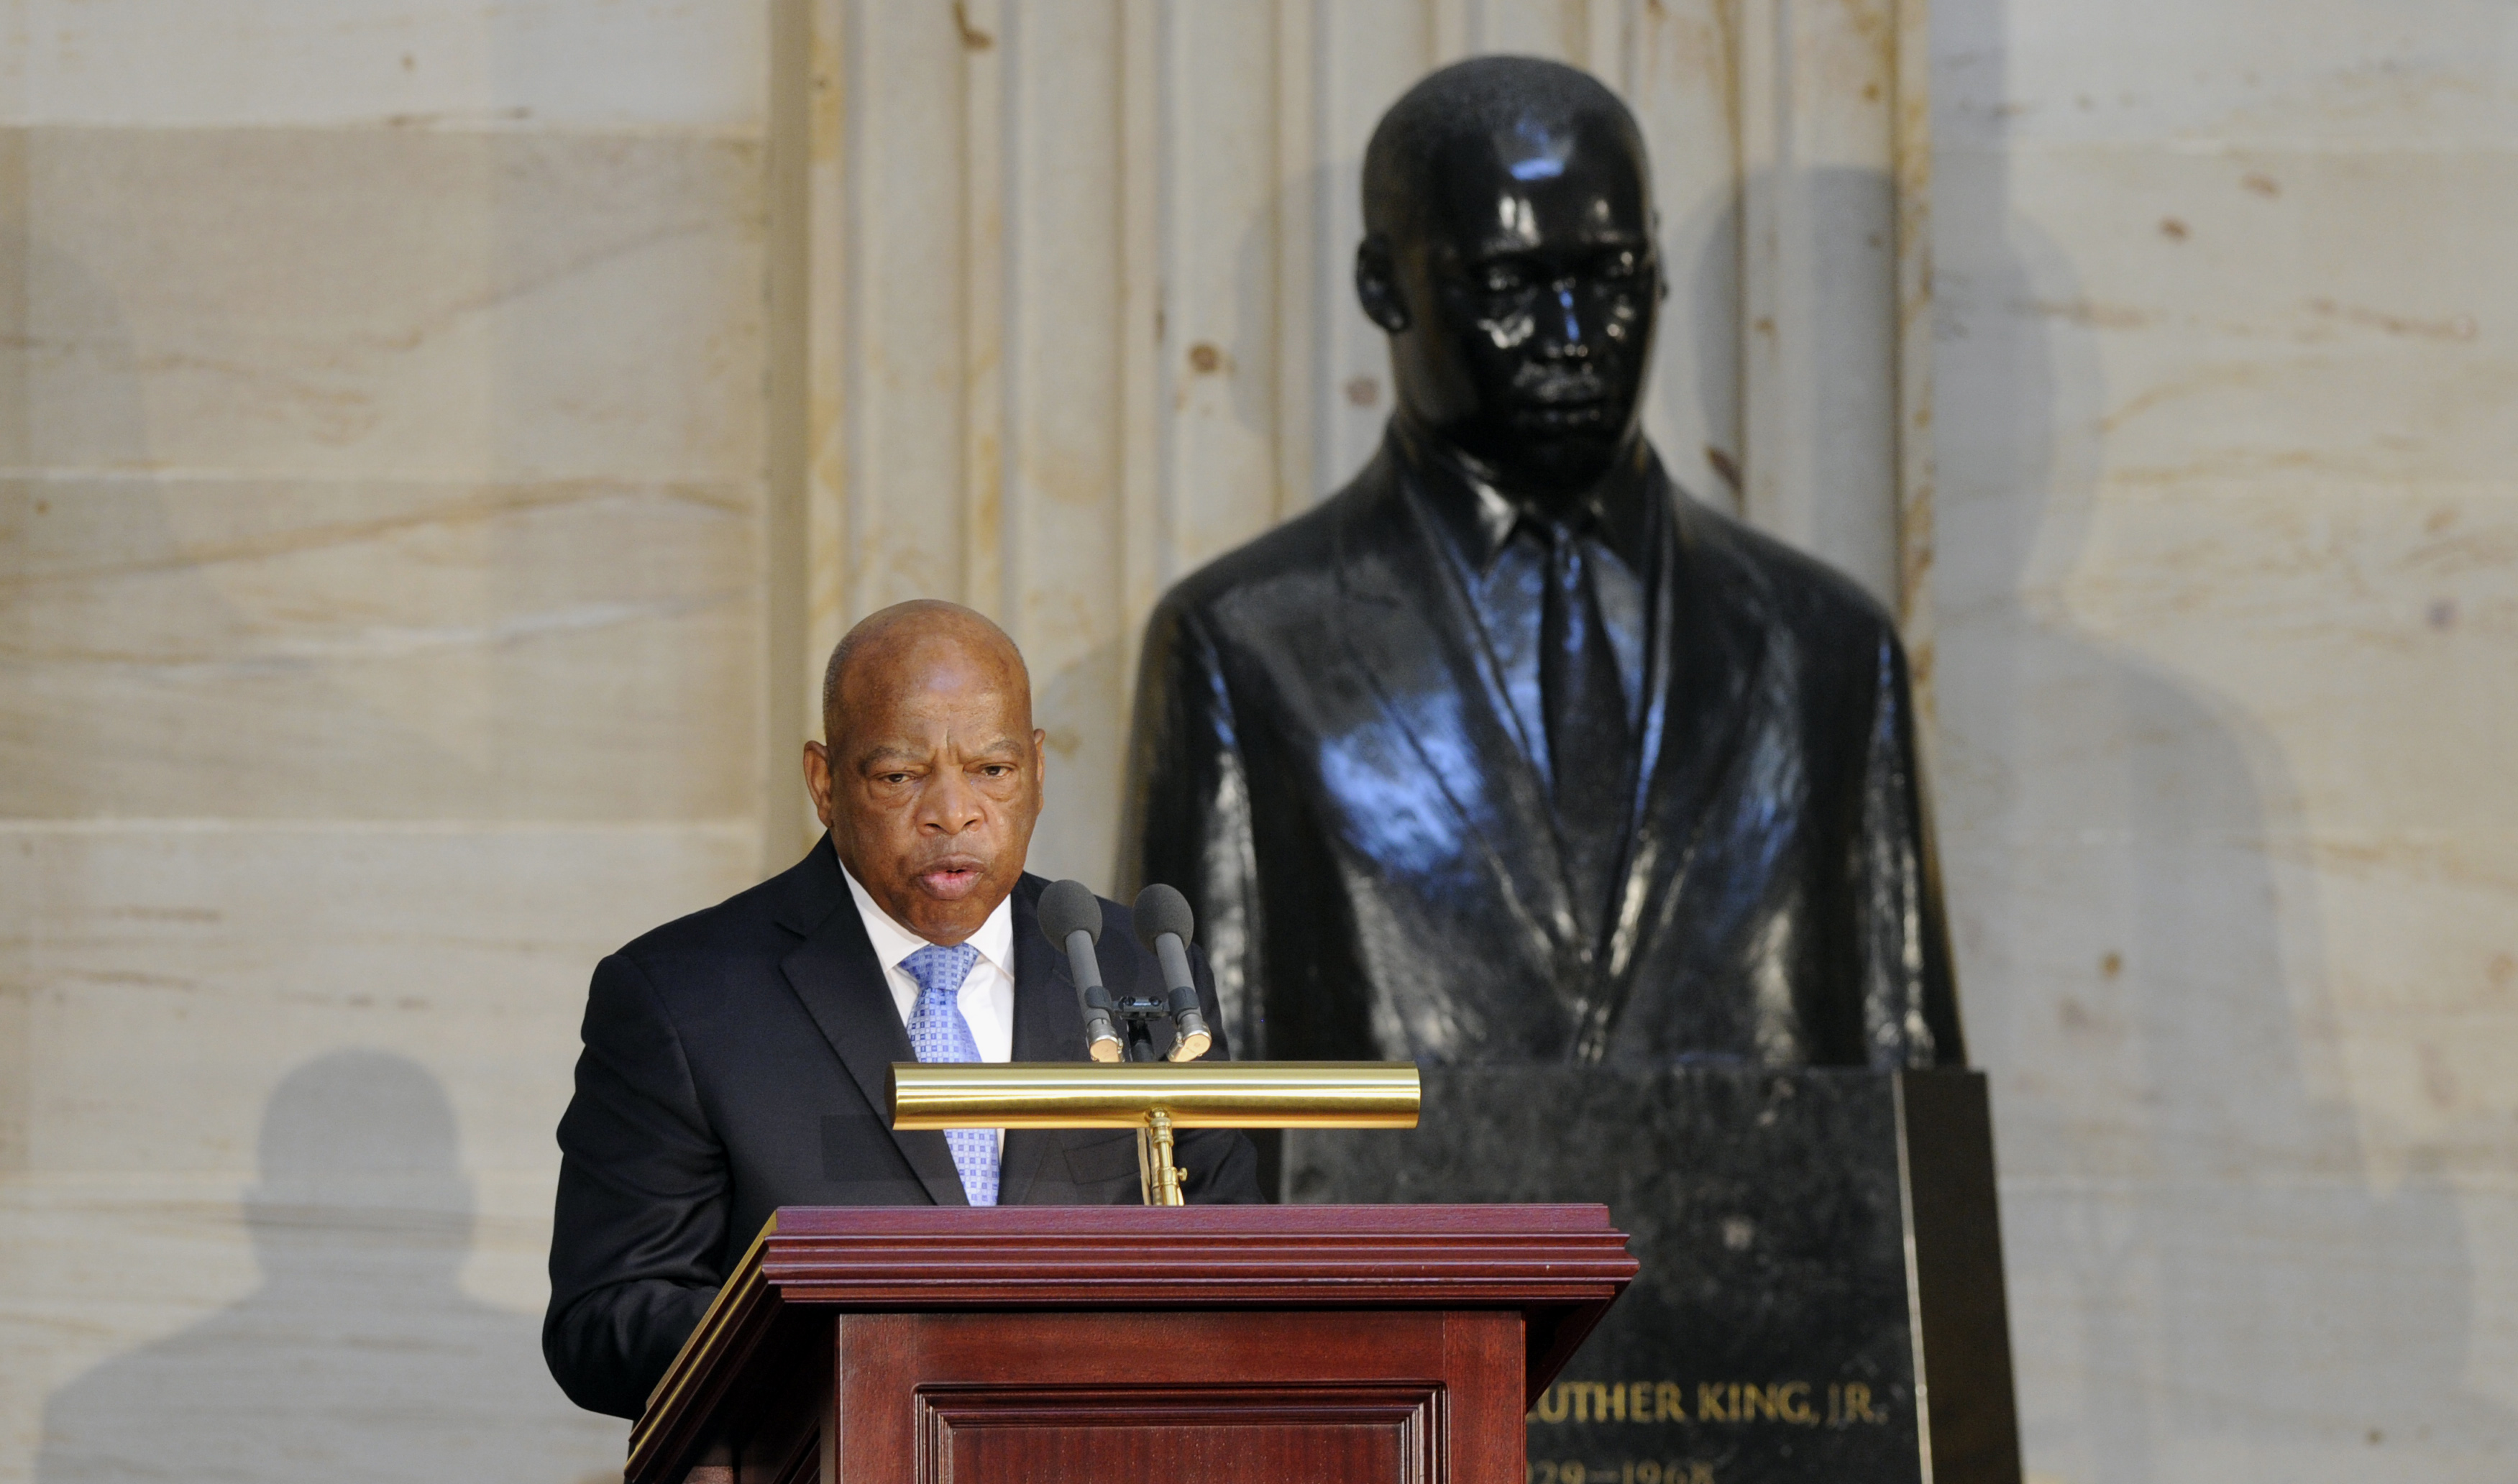 Democratic Representative John Lewis of Georgia stands in front of a statue of Martin Luther King Jr. as he speaks during the 50th anniversary ceremony for the Civil Rights Act of 1964 on Capitol Hill, in Washington, D.C., on June 24, 2014